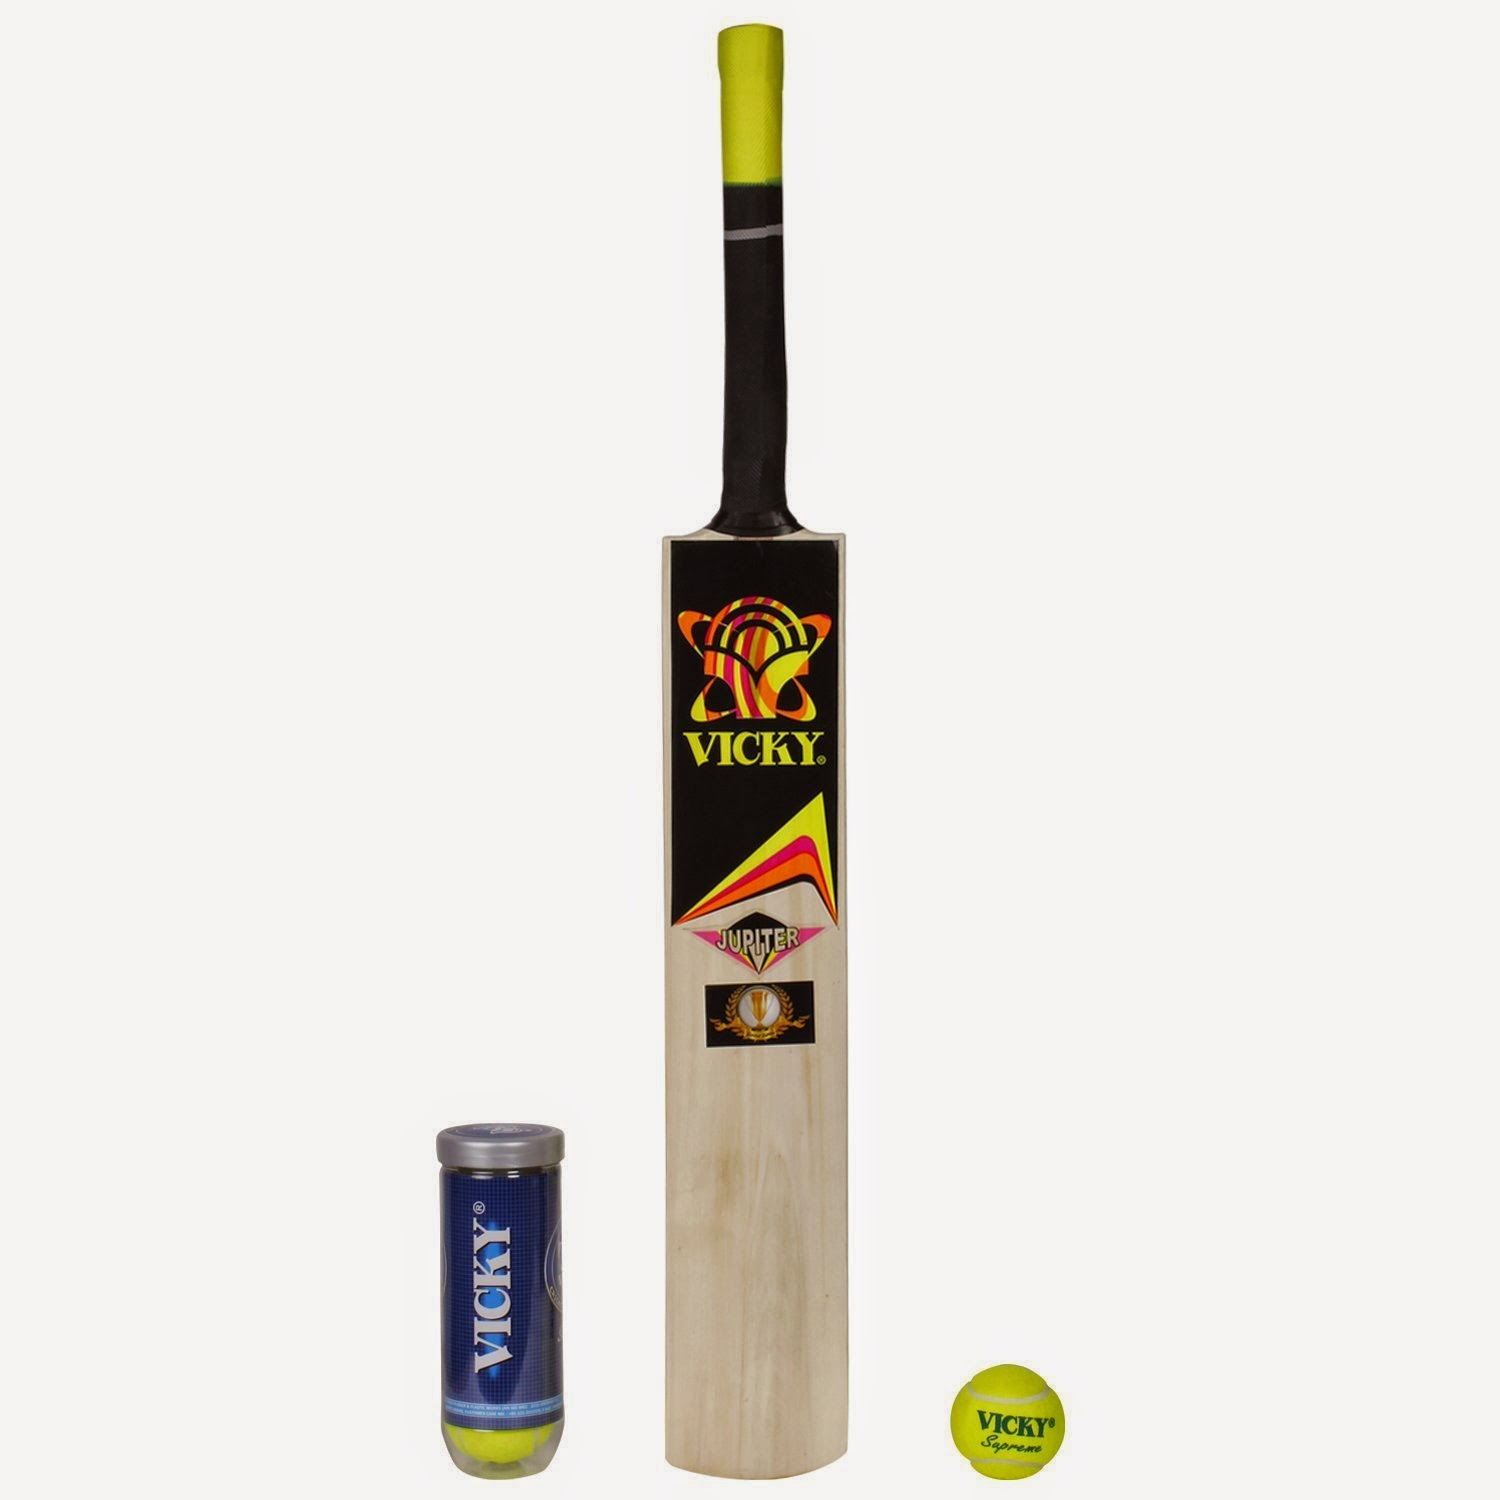 Buy Vicky Jupiter (Limited Edition) Cricket Combo Rs. 400 only at Amazon.